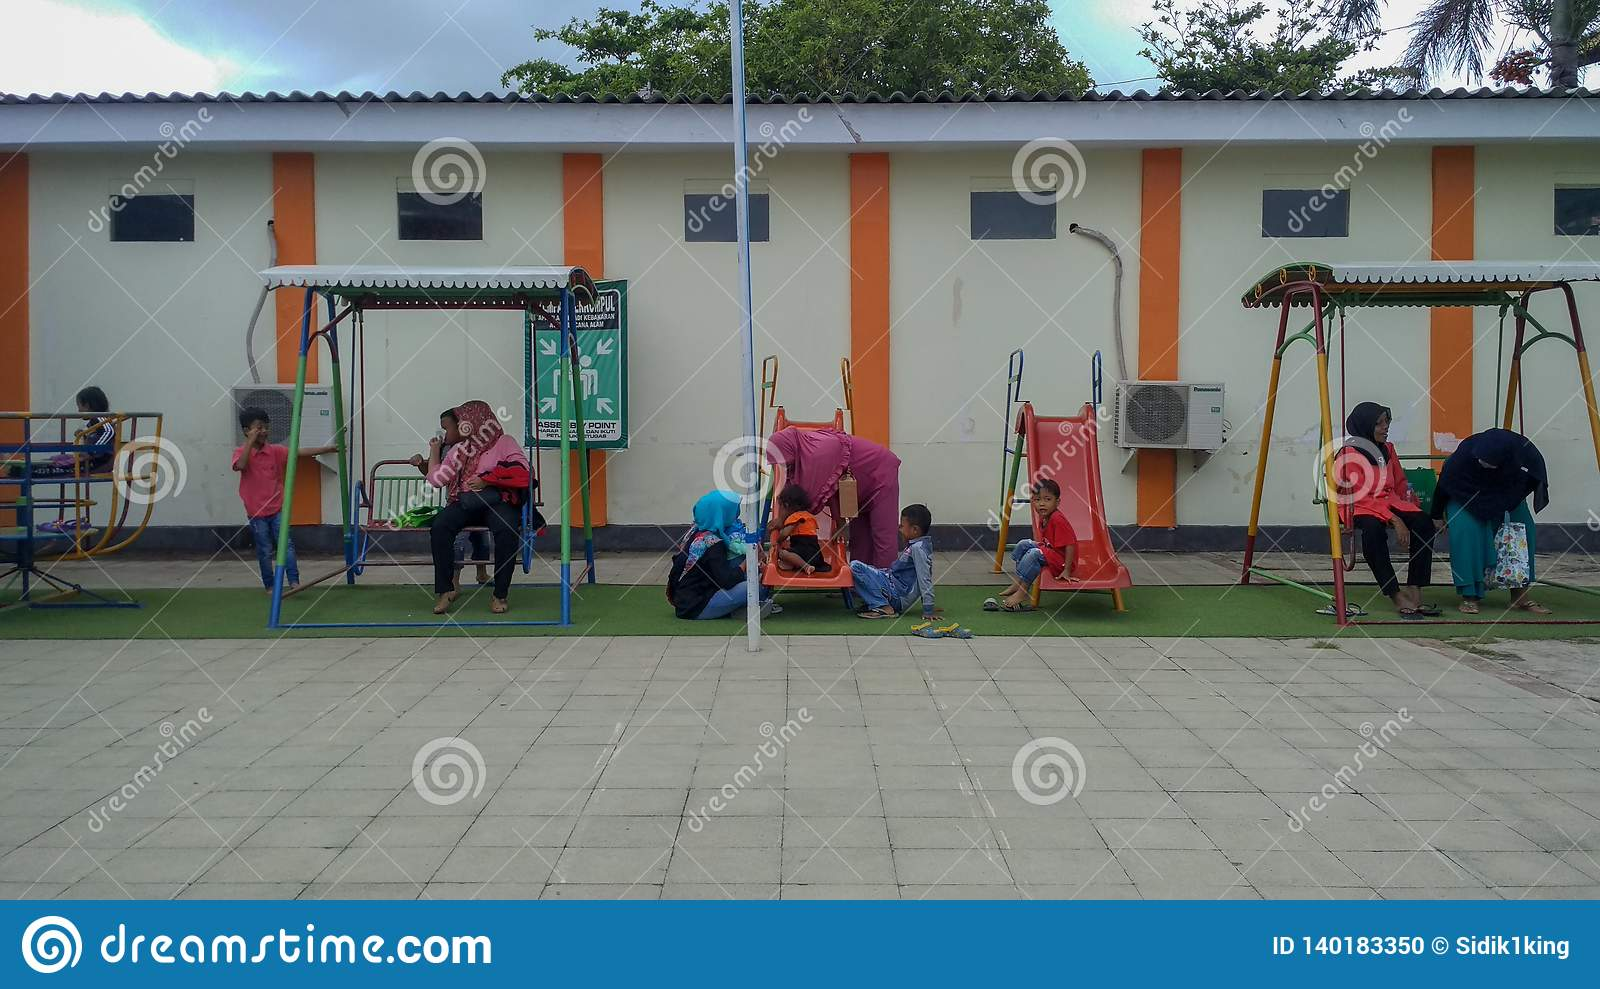 Playground in public area, childrens in sunny summer holiday.